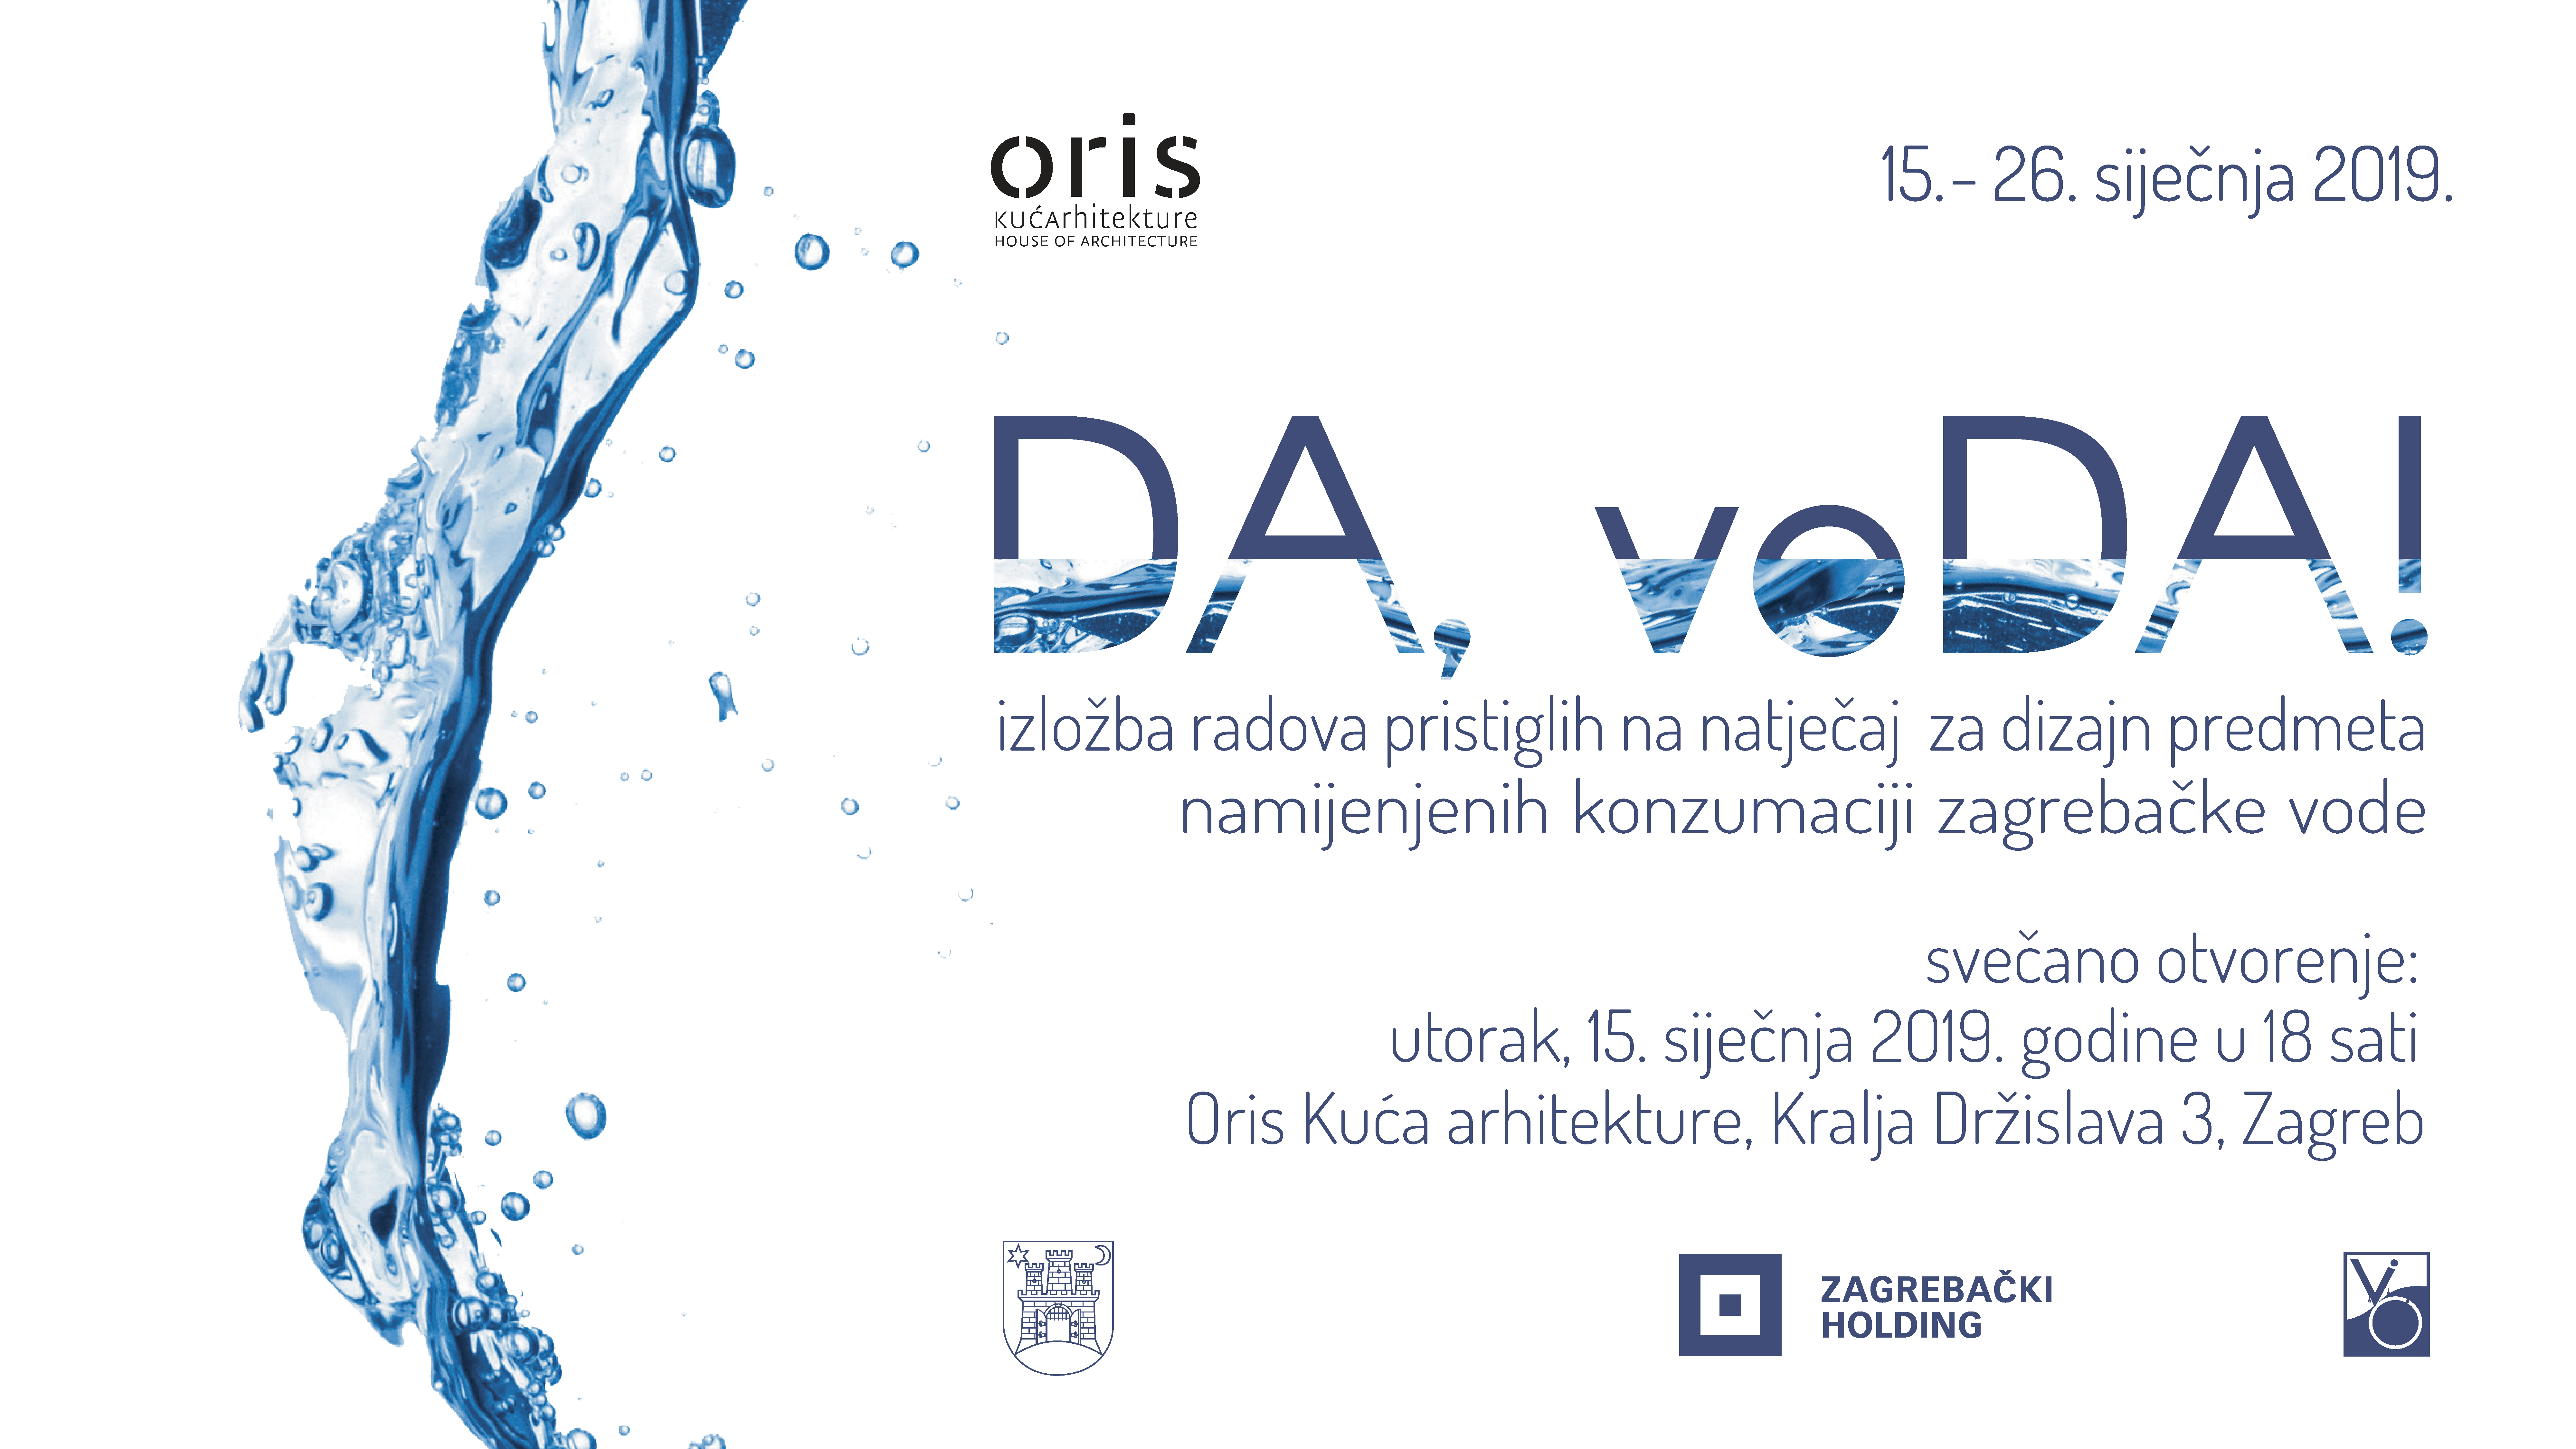 DA, voDA! Exhibition of works submitted to the tender for the design of objects intended for consumption of Zagreb water